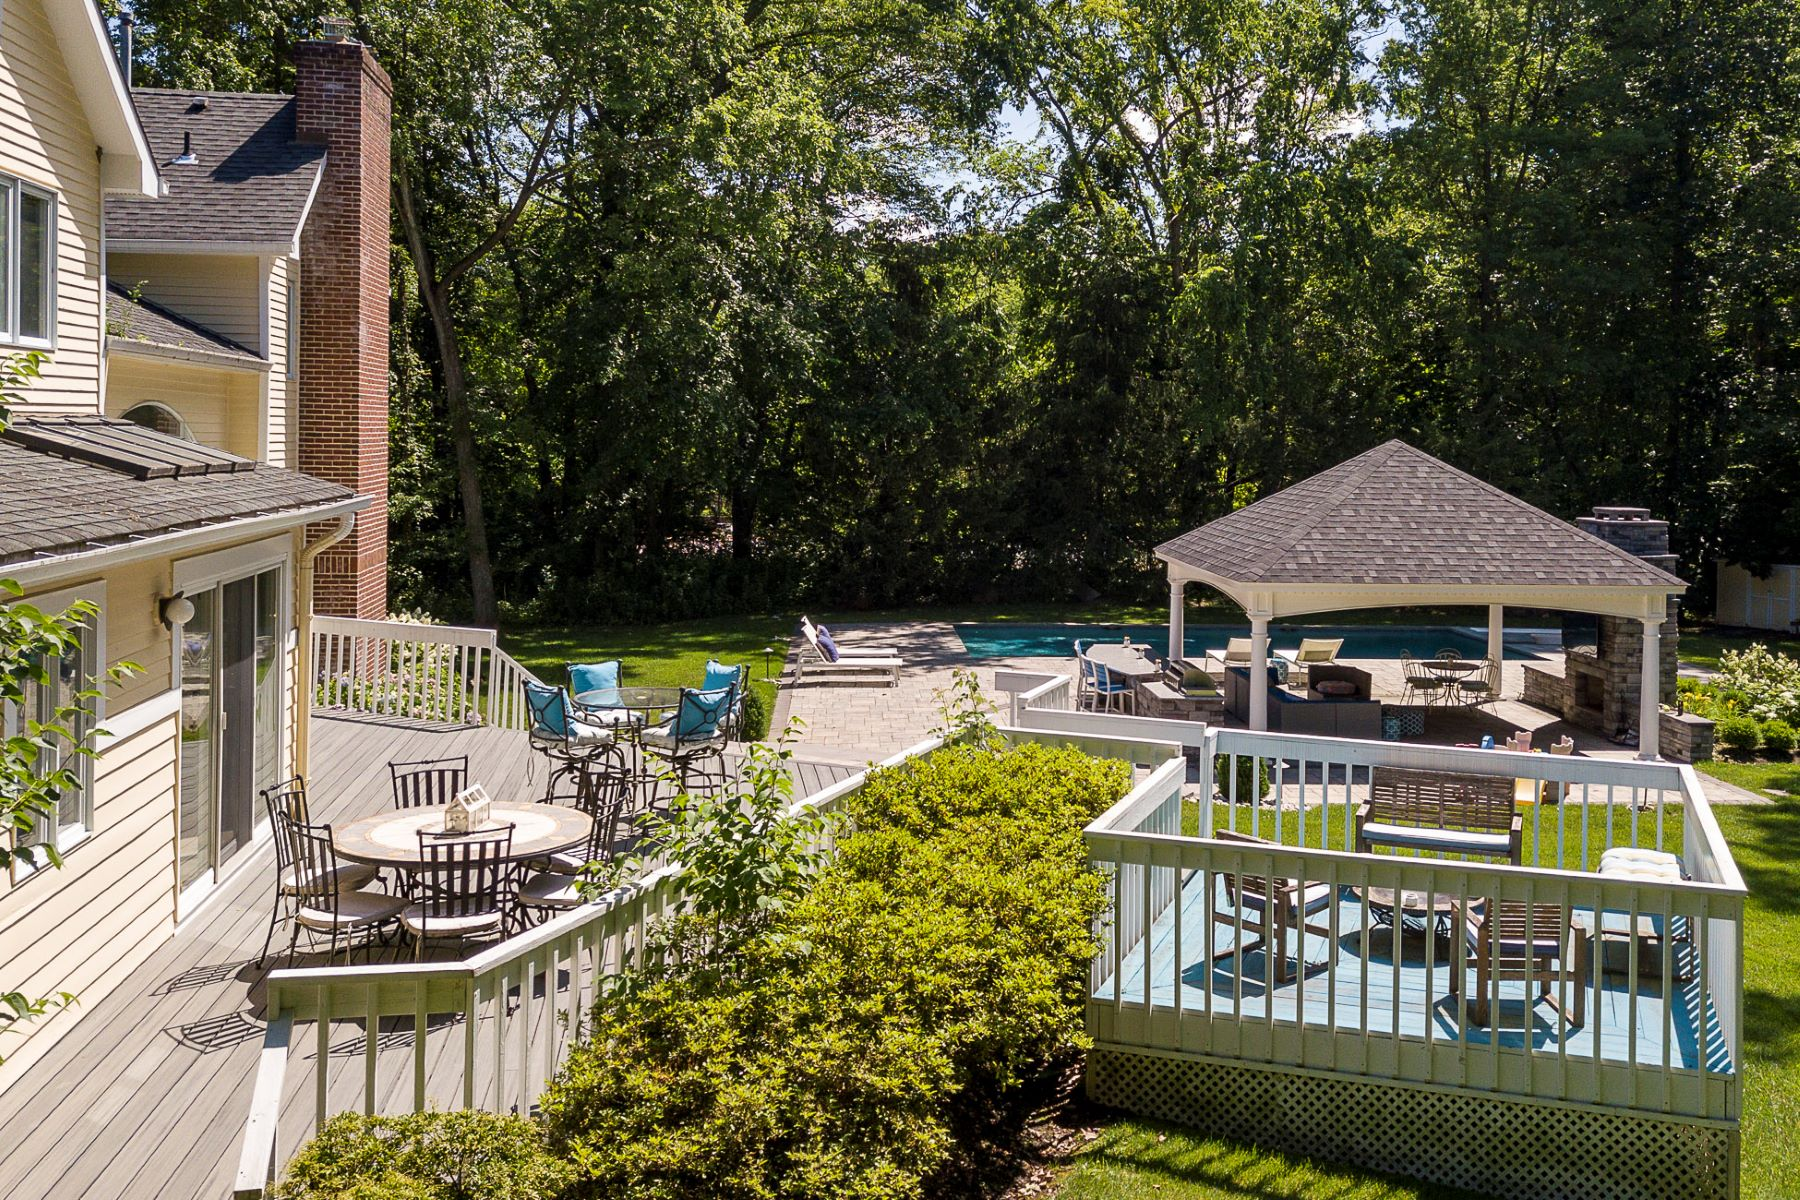 Additional photo for property listing at A Backyard Worthy of the Finest Resorts 7 Benedek Road, Princeton, New Jersey 08540 United States